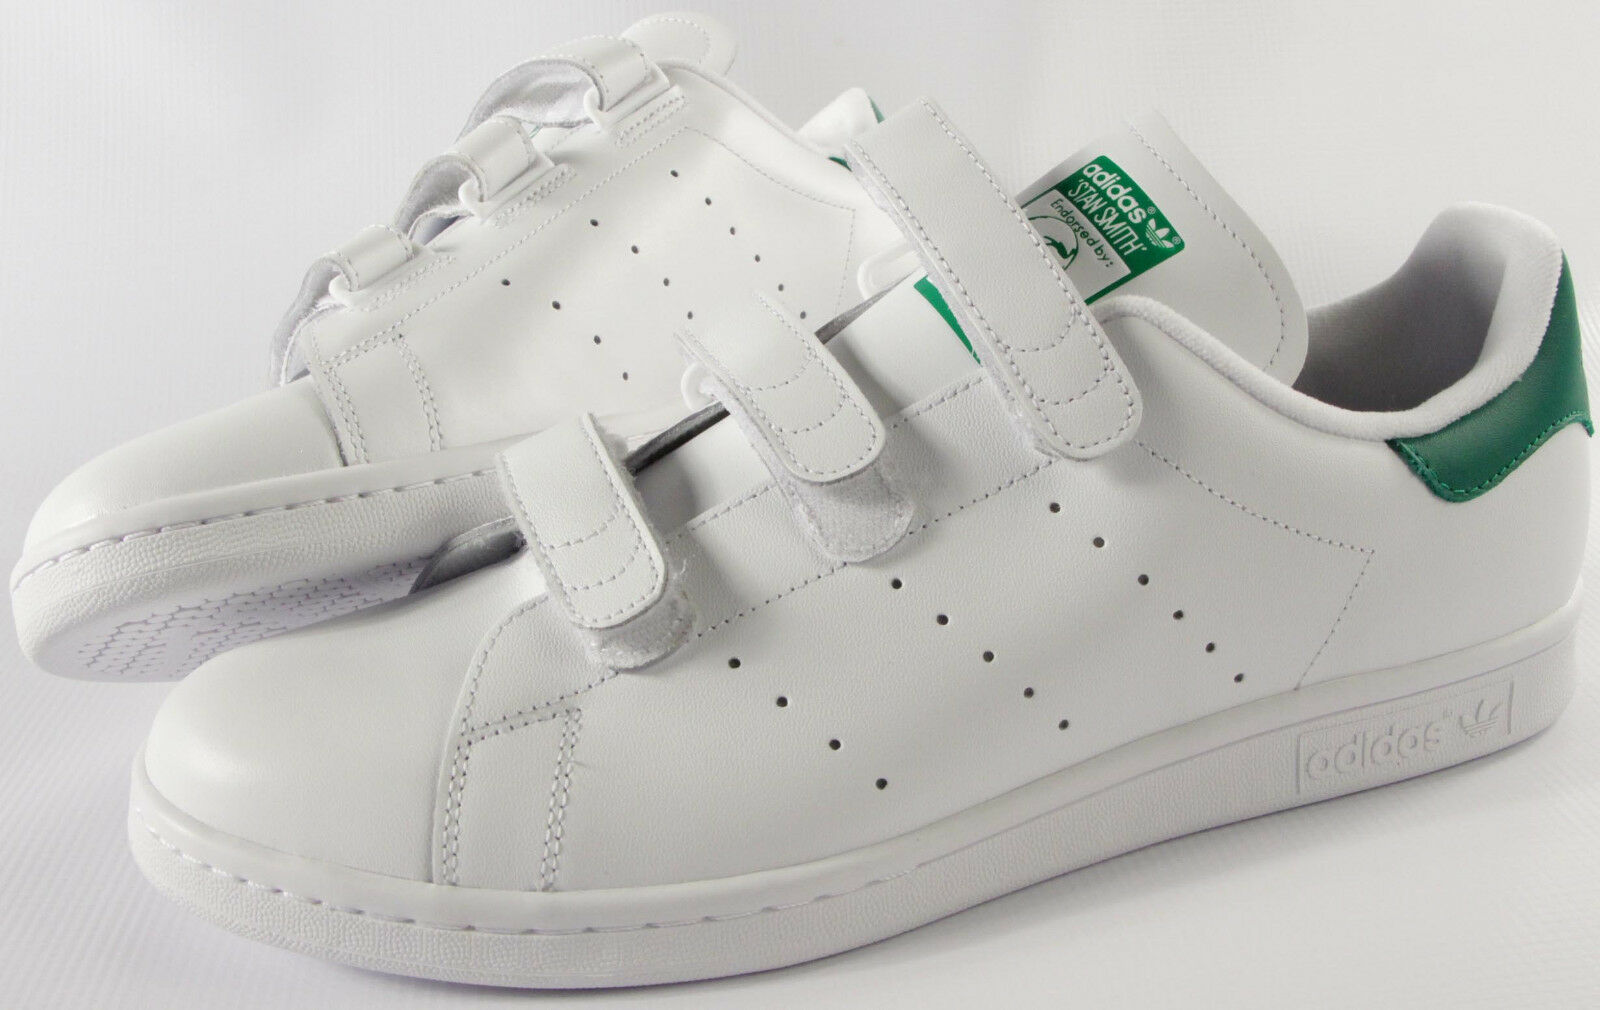 ADIDAS ORIGINALS Stan Smith 3 STRAP shoes- NEW- CF classic White tennis sneakers